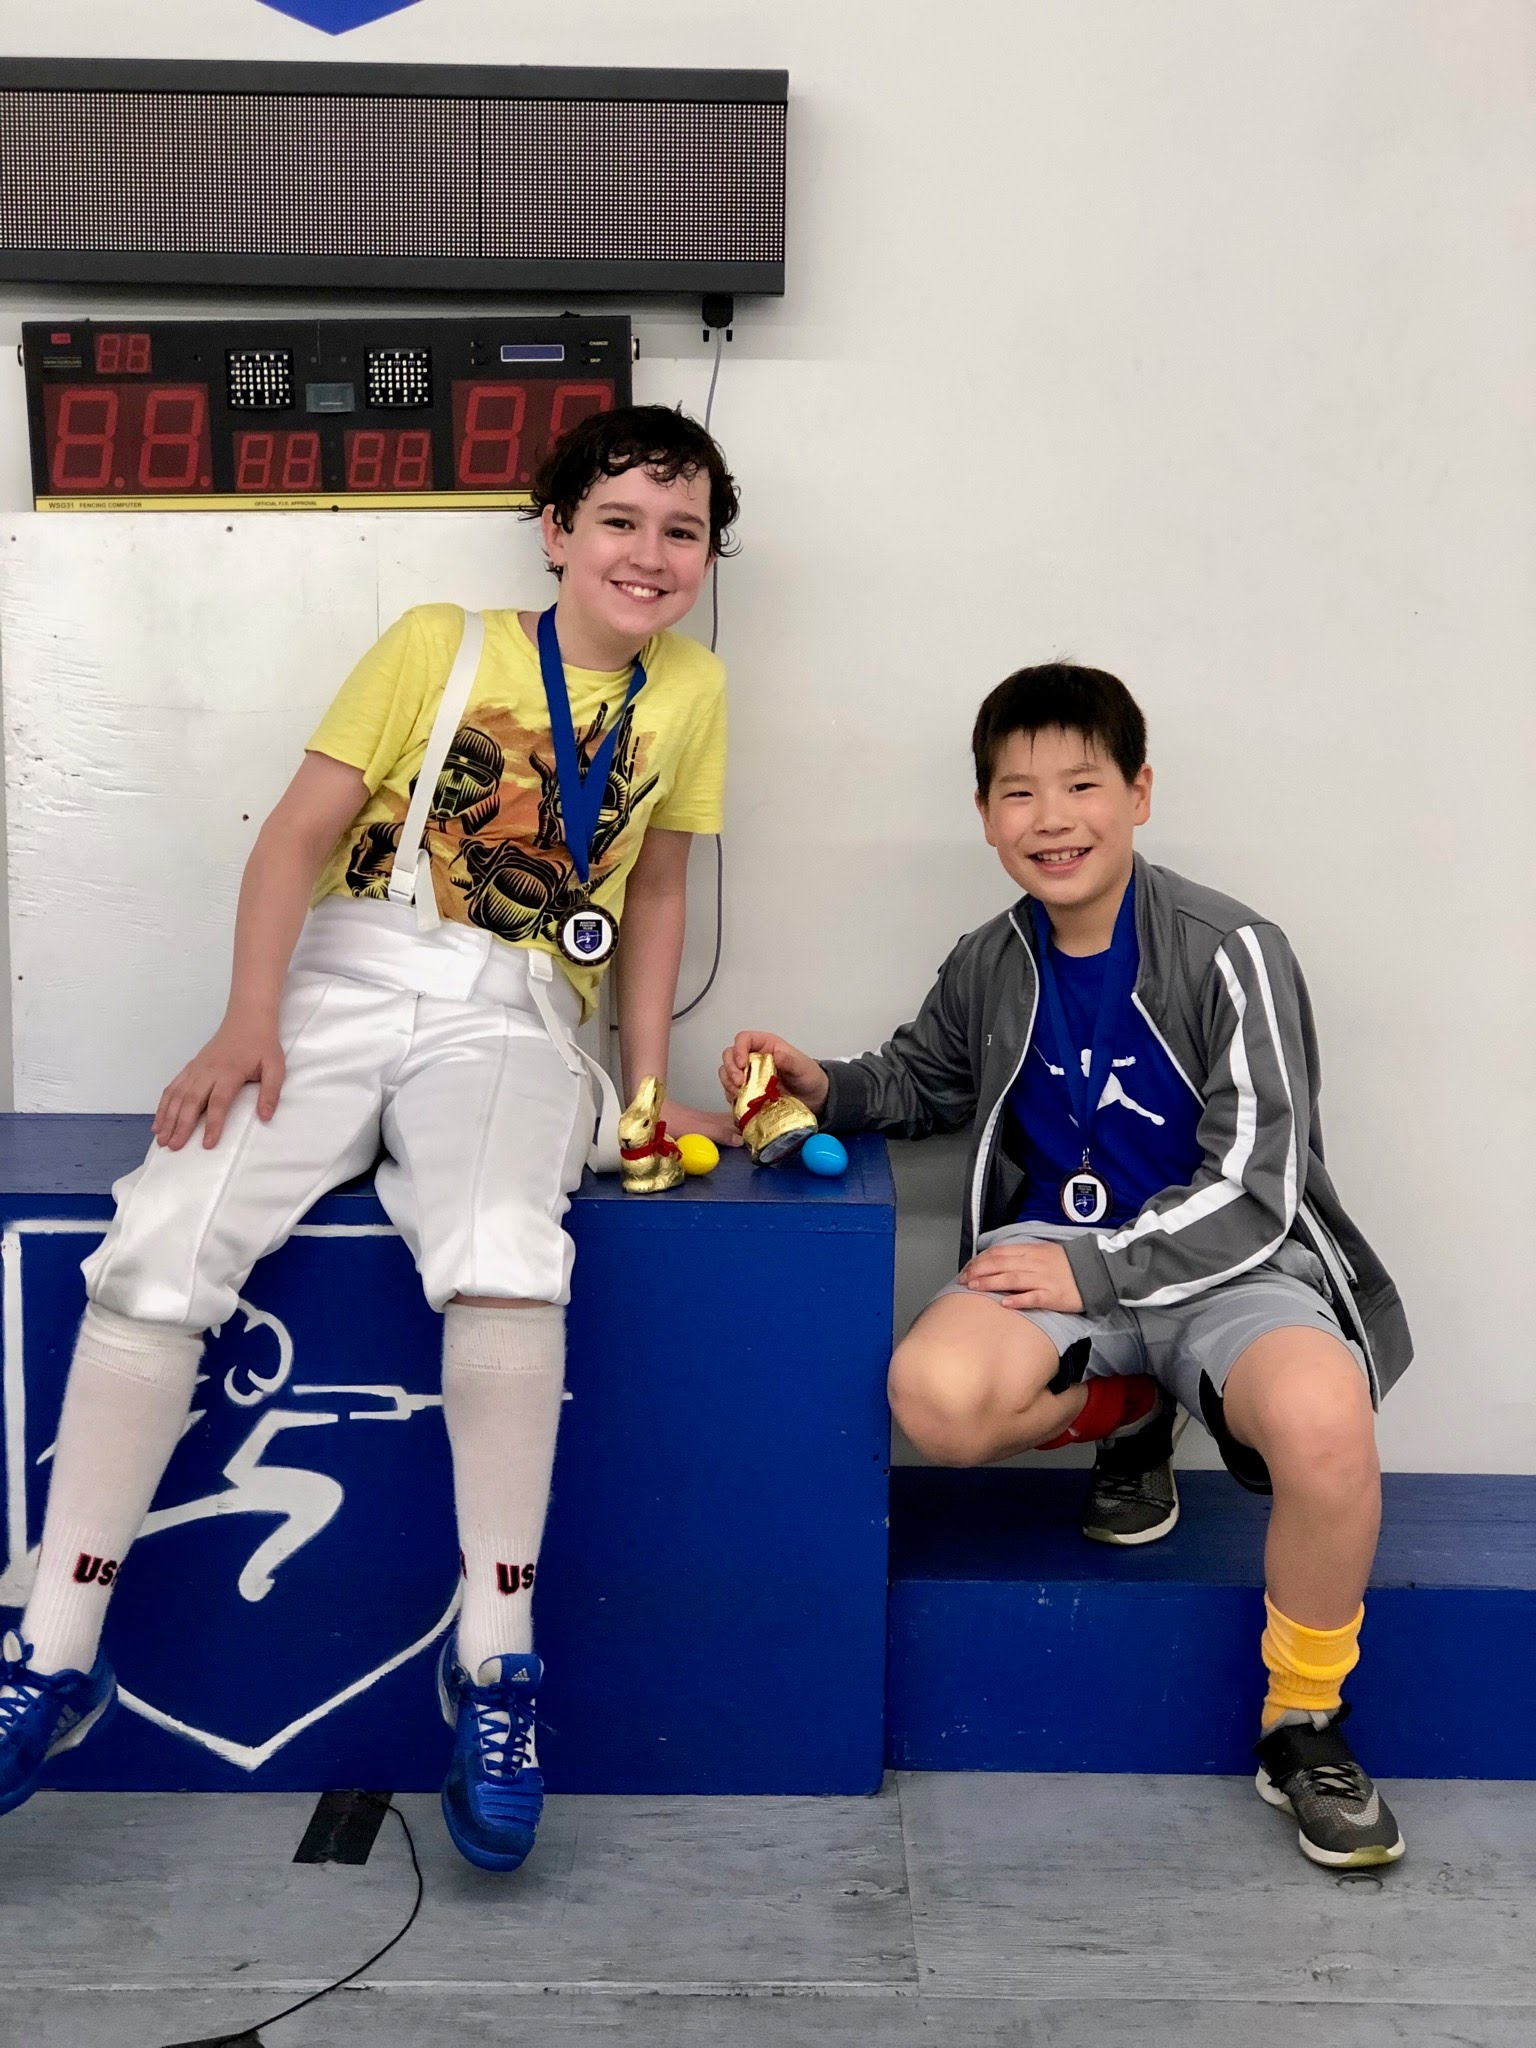 Pictured: Gabriel McCarthy (left) won a Top-8 Medal in Y-12 Men's Saber. Shaun Kim (right) won Bronze Medals in Y-12 and Y-14 Men's Saber